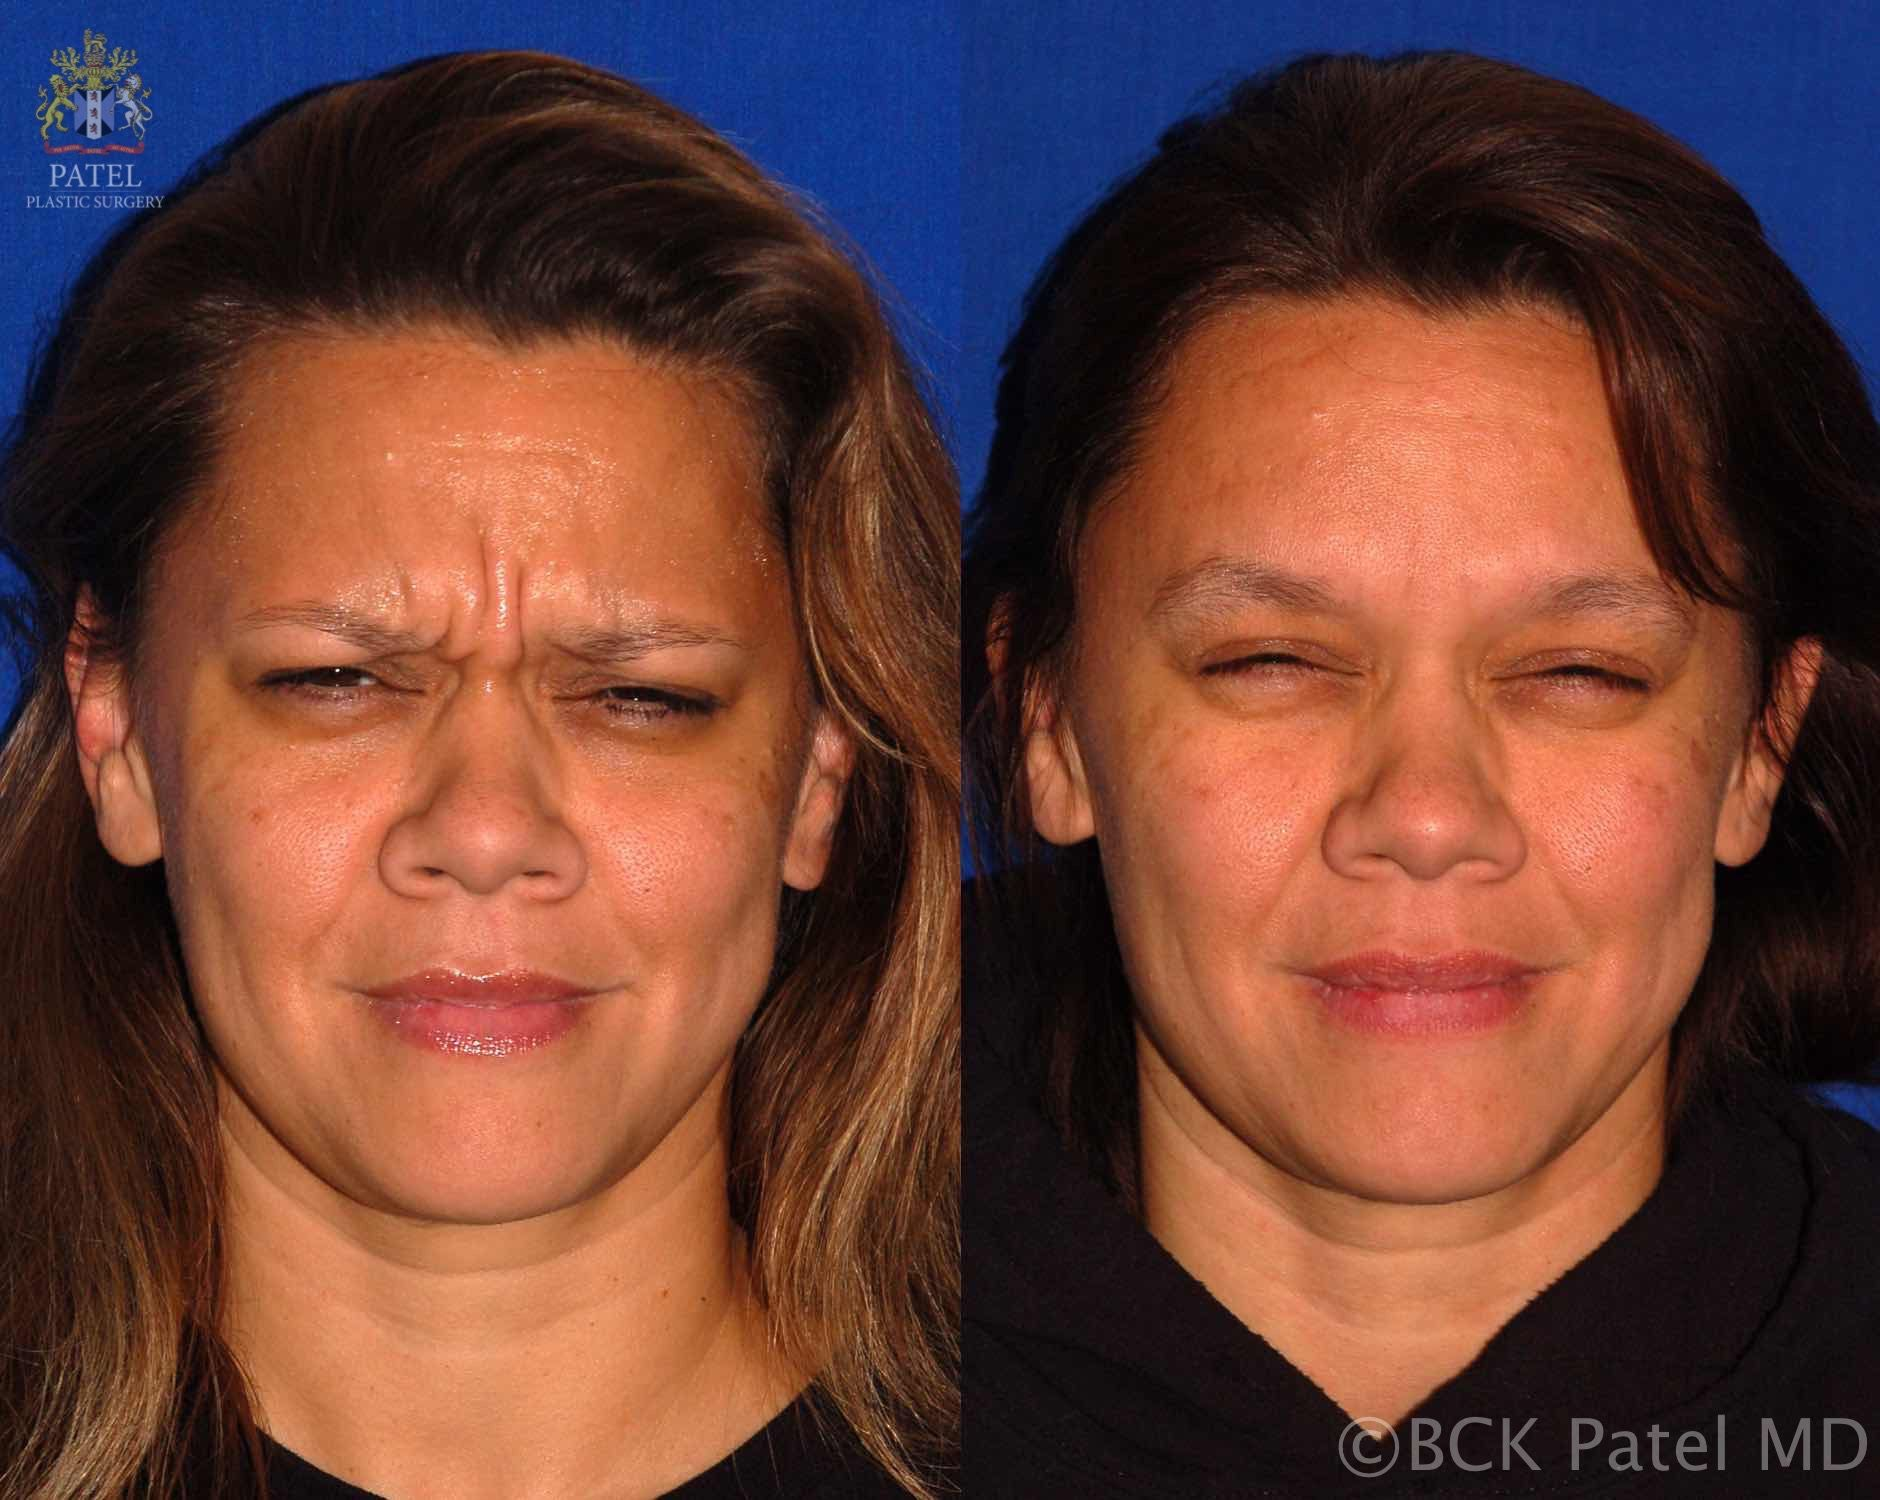 englishsurgeon.com. Photos showing the results of botox injections